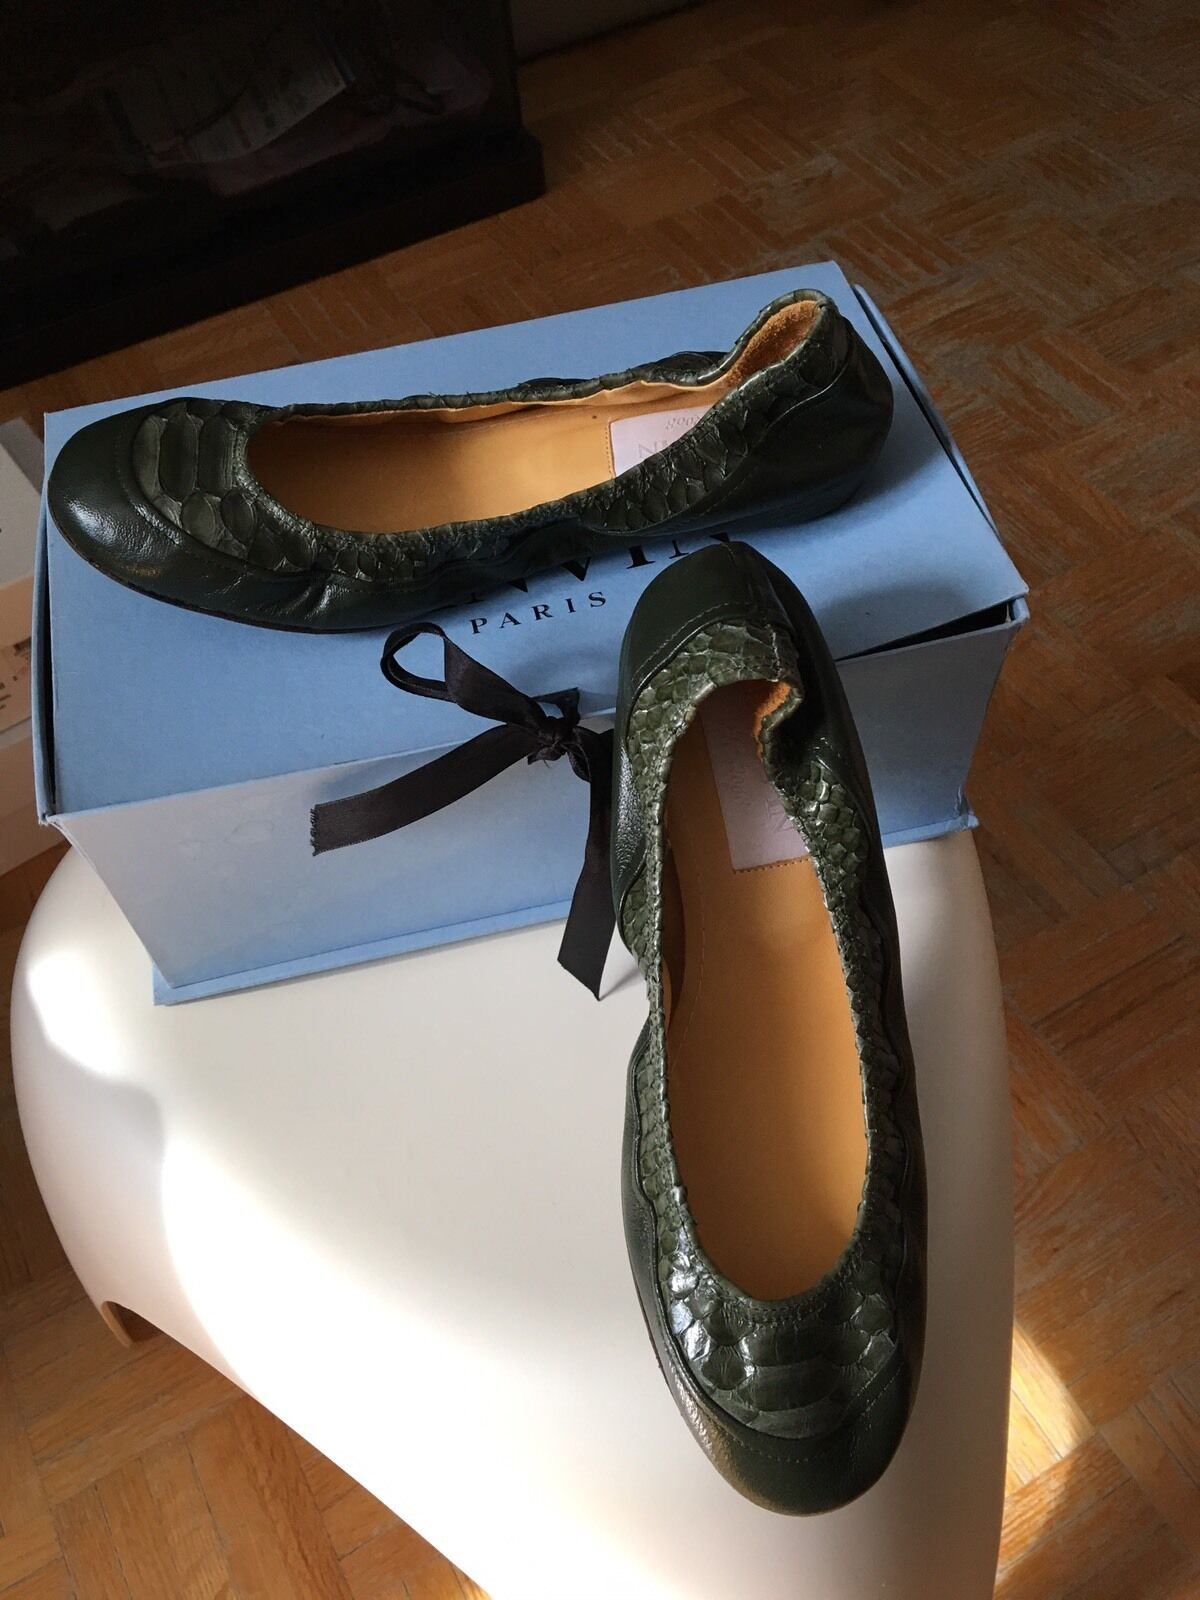 NIB Burberry Nero Canvas Ballet in Flat 37 brand new in Ballet box 0ea152